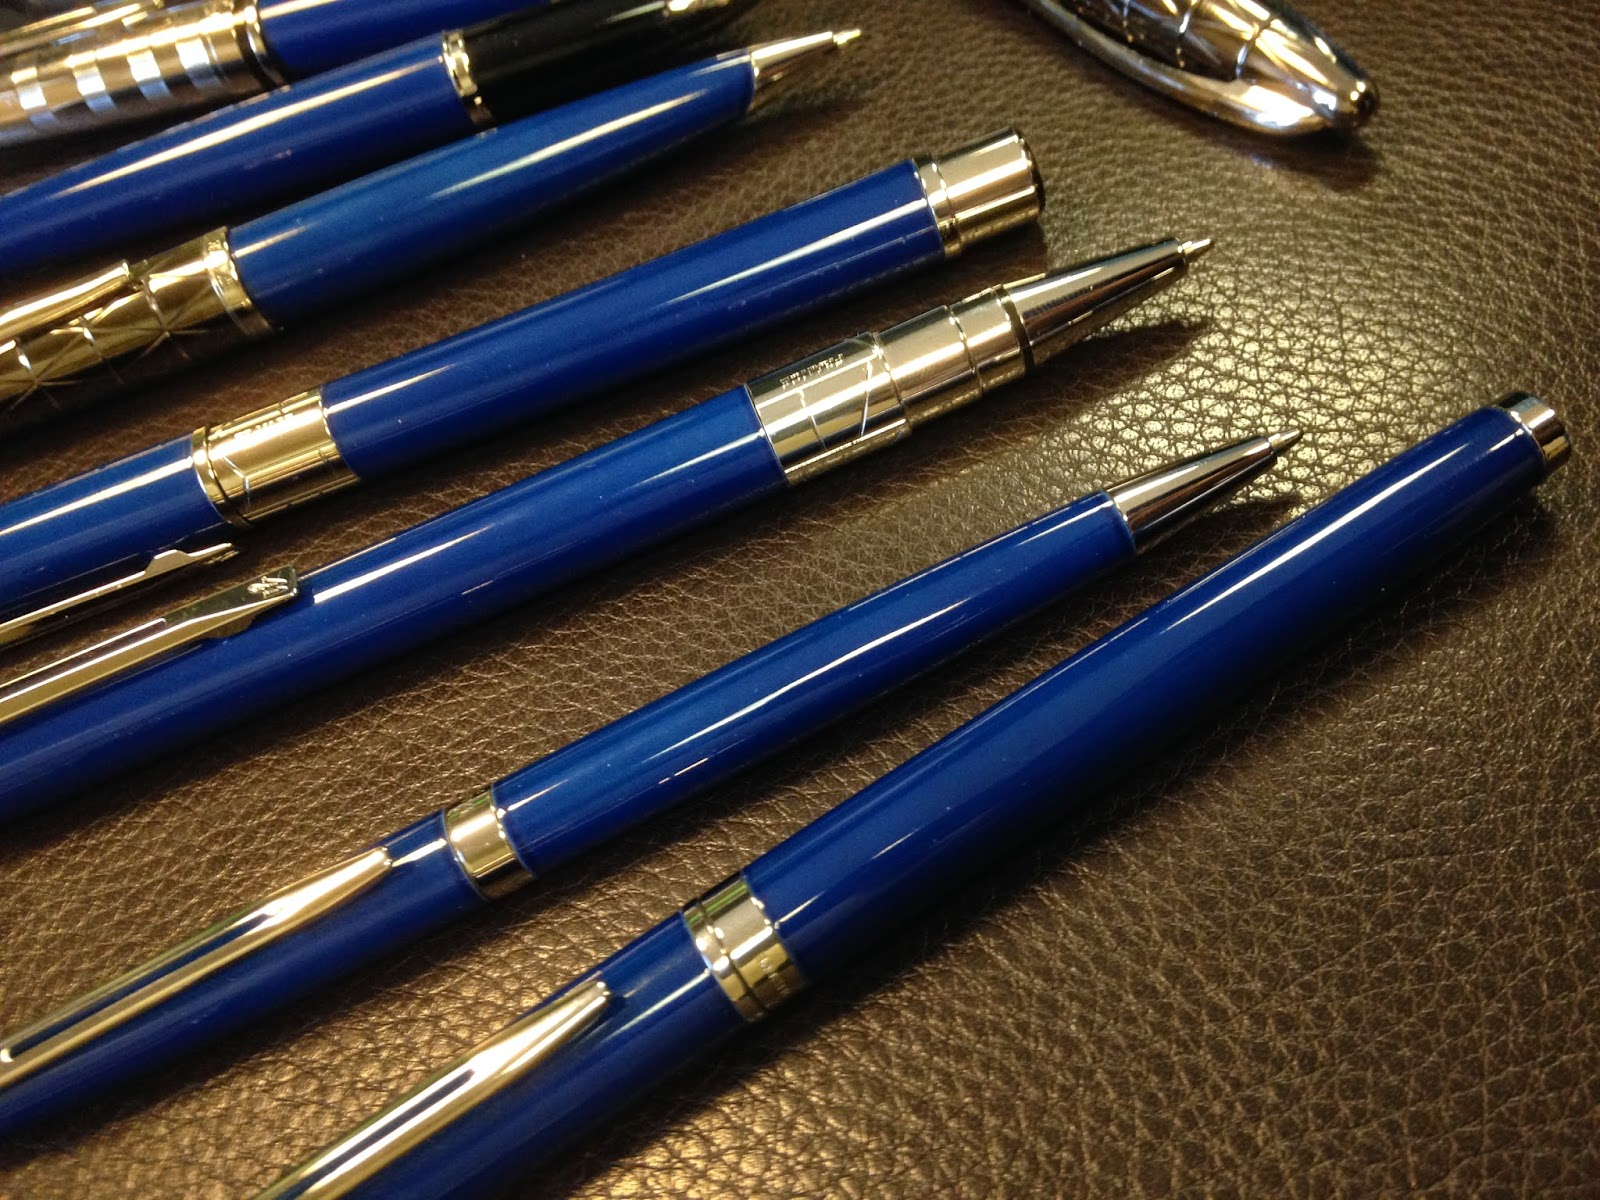 The Gold Standard Sneak Peek At New Parker Waterman